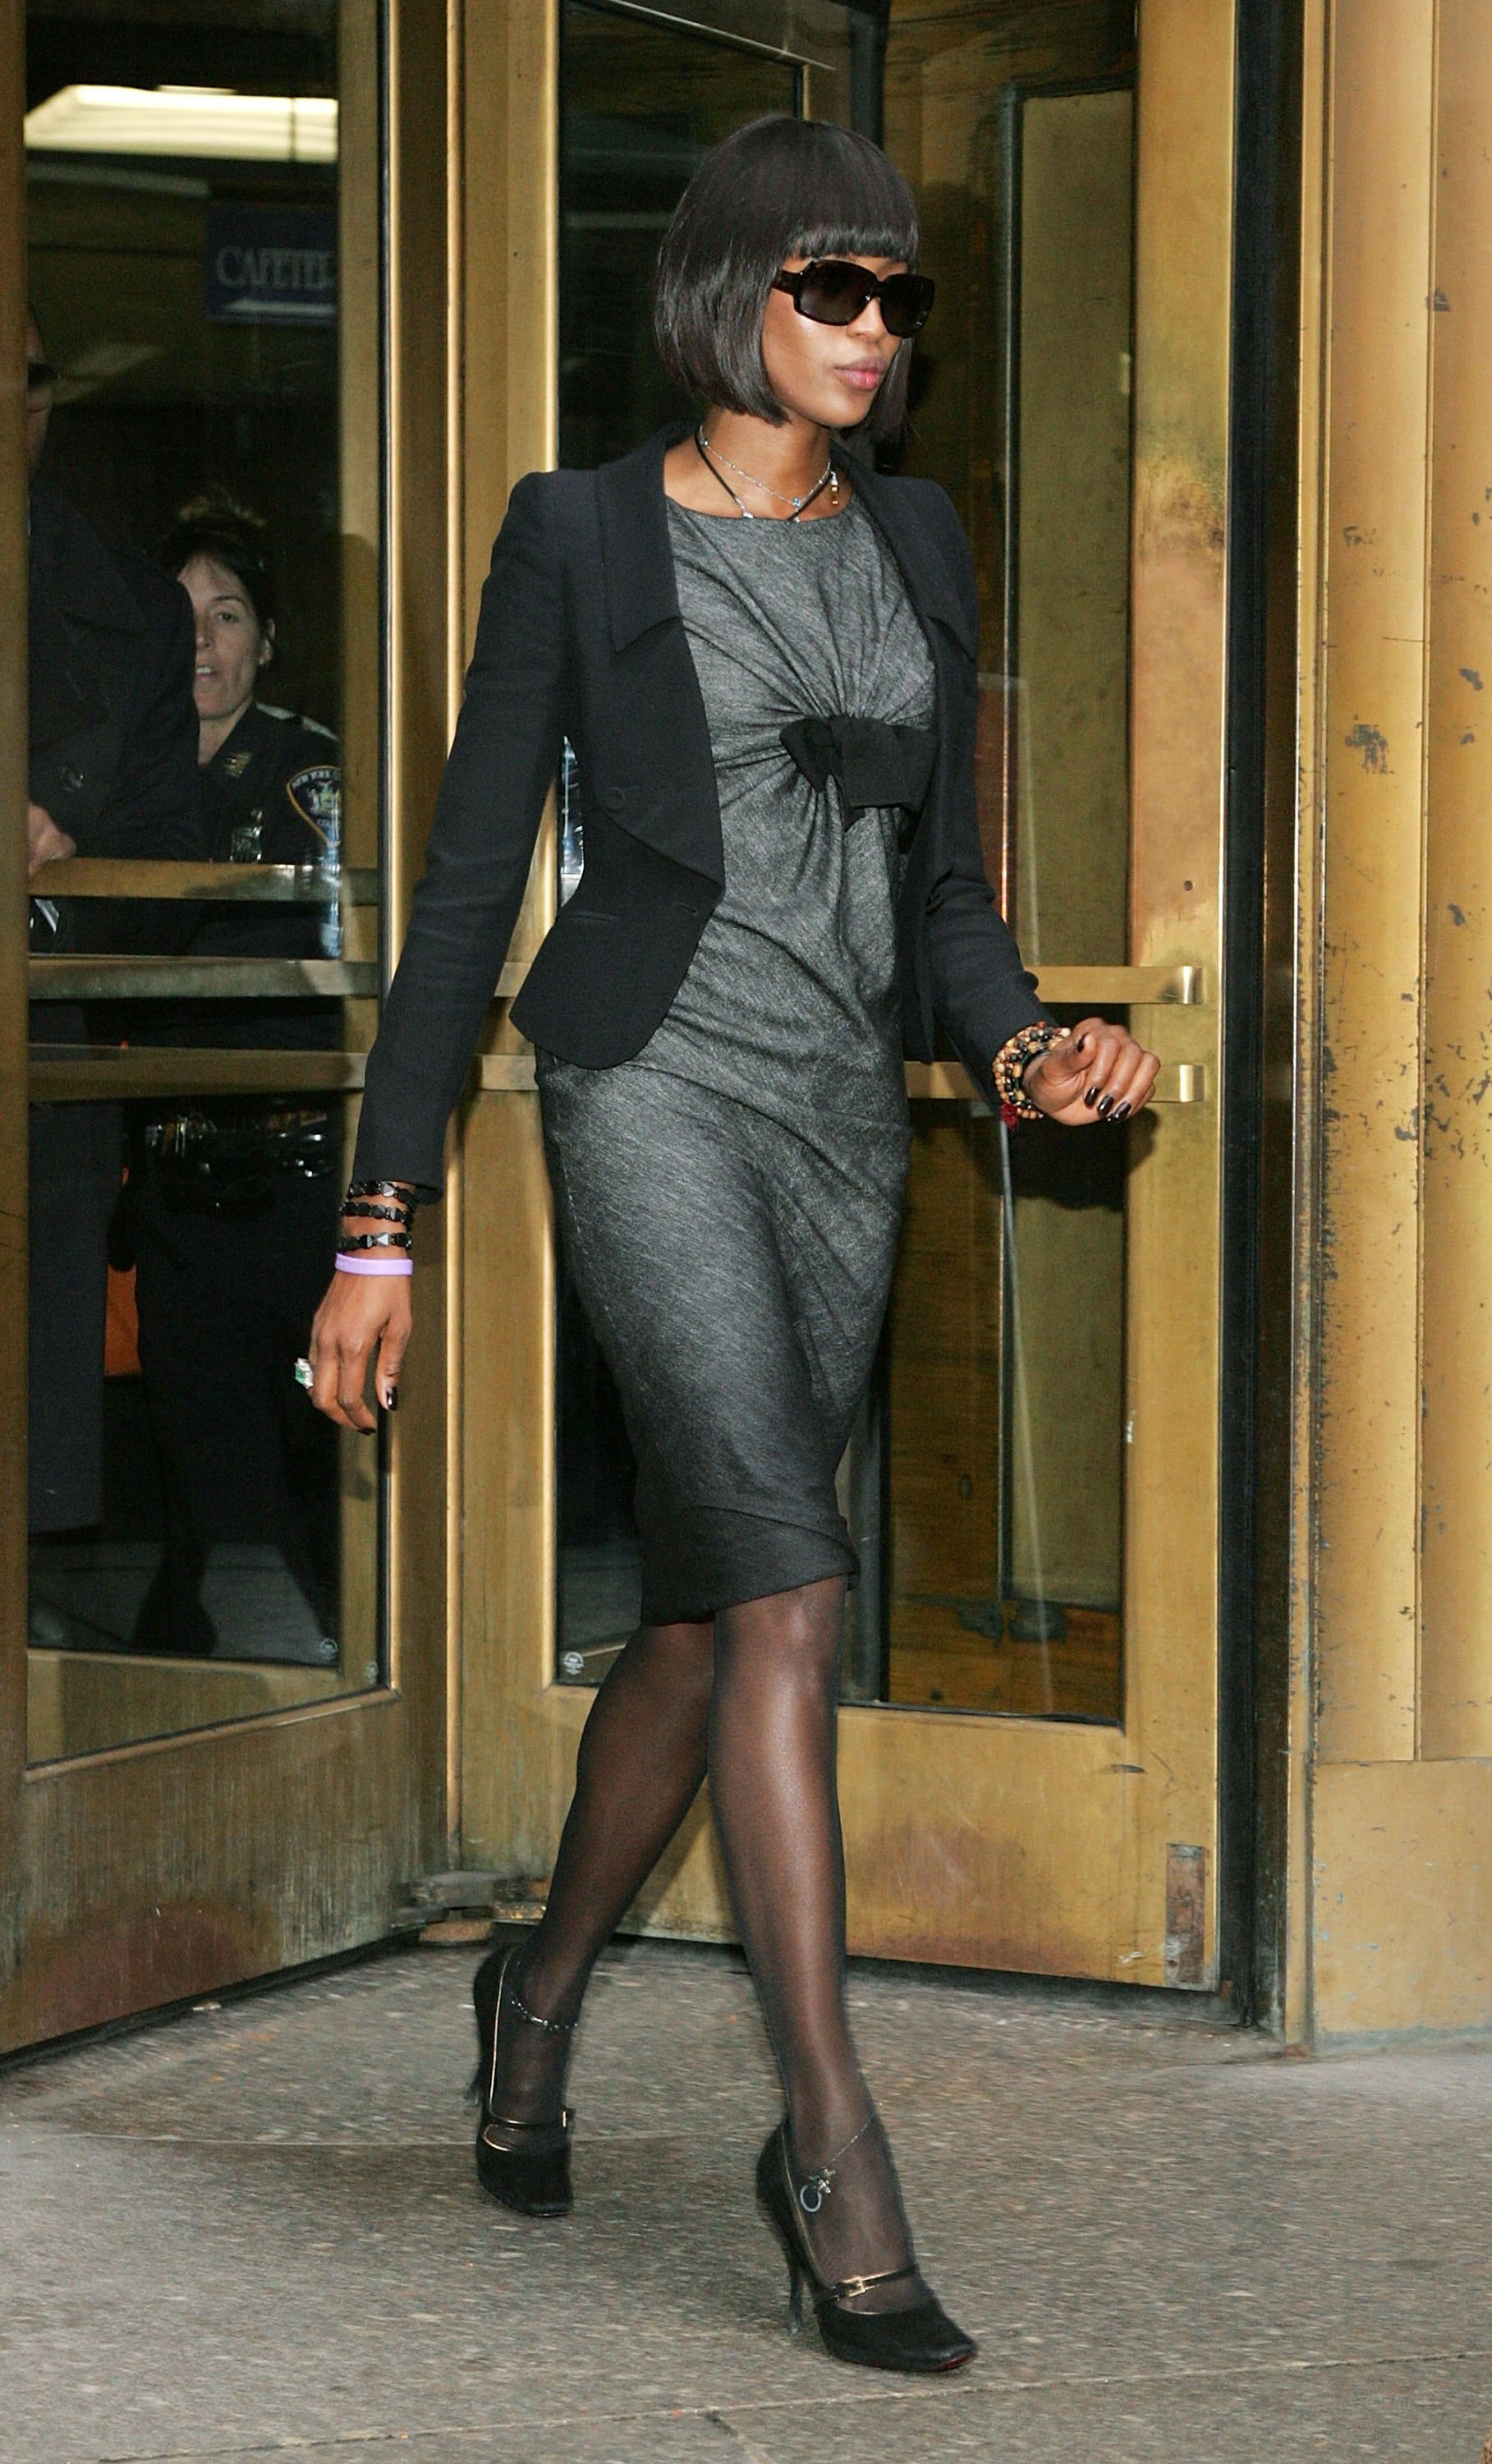 Supermodel Naomi Campbell leaves after appearing in a Manhattan Criminal Court for assault charges in New York City on Nov. 15, 2006. Campbell is being accused of hitting former  housekeeper Gaby Gibson.